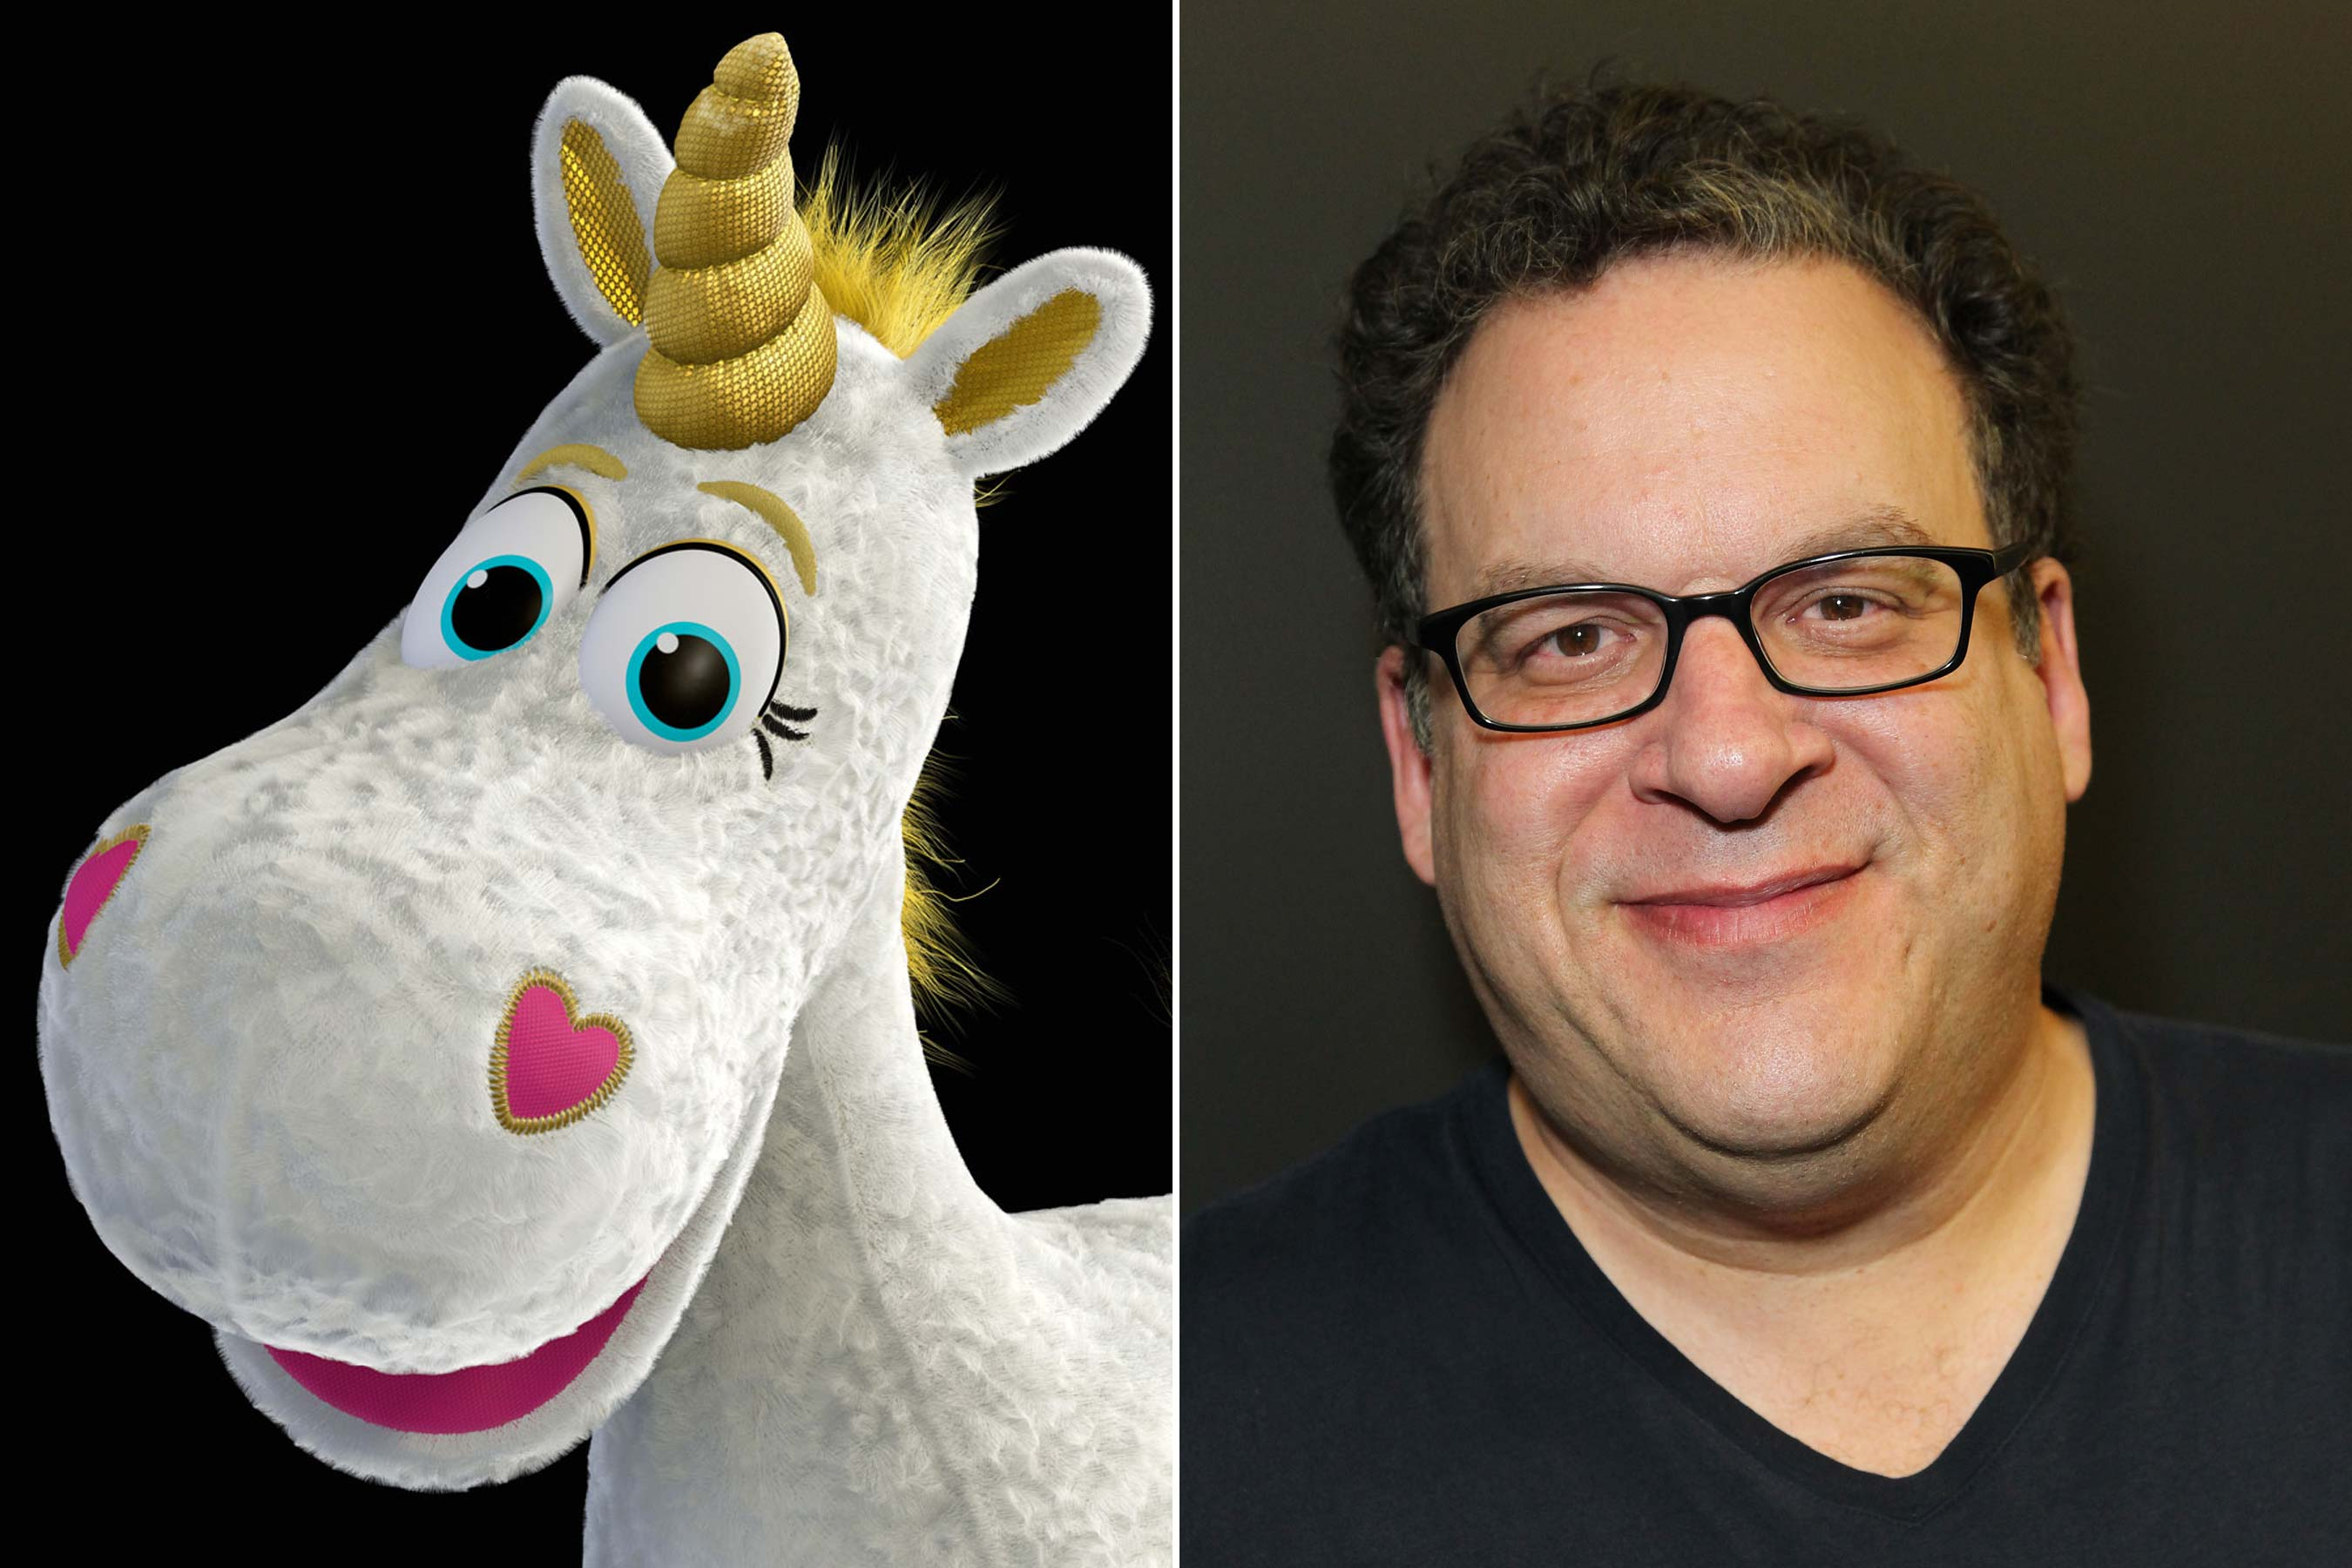 <strong>Buttercup - Jeff Garlin (Toy Story 3)</strong>